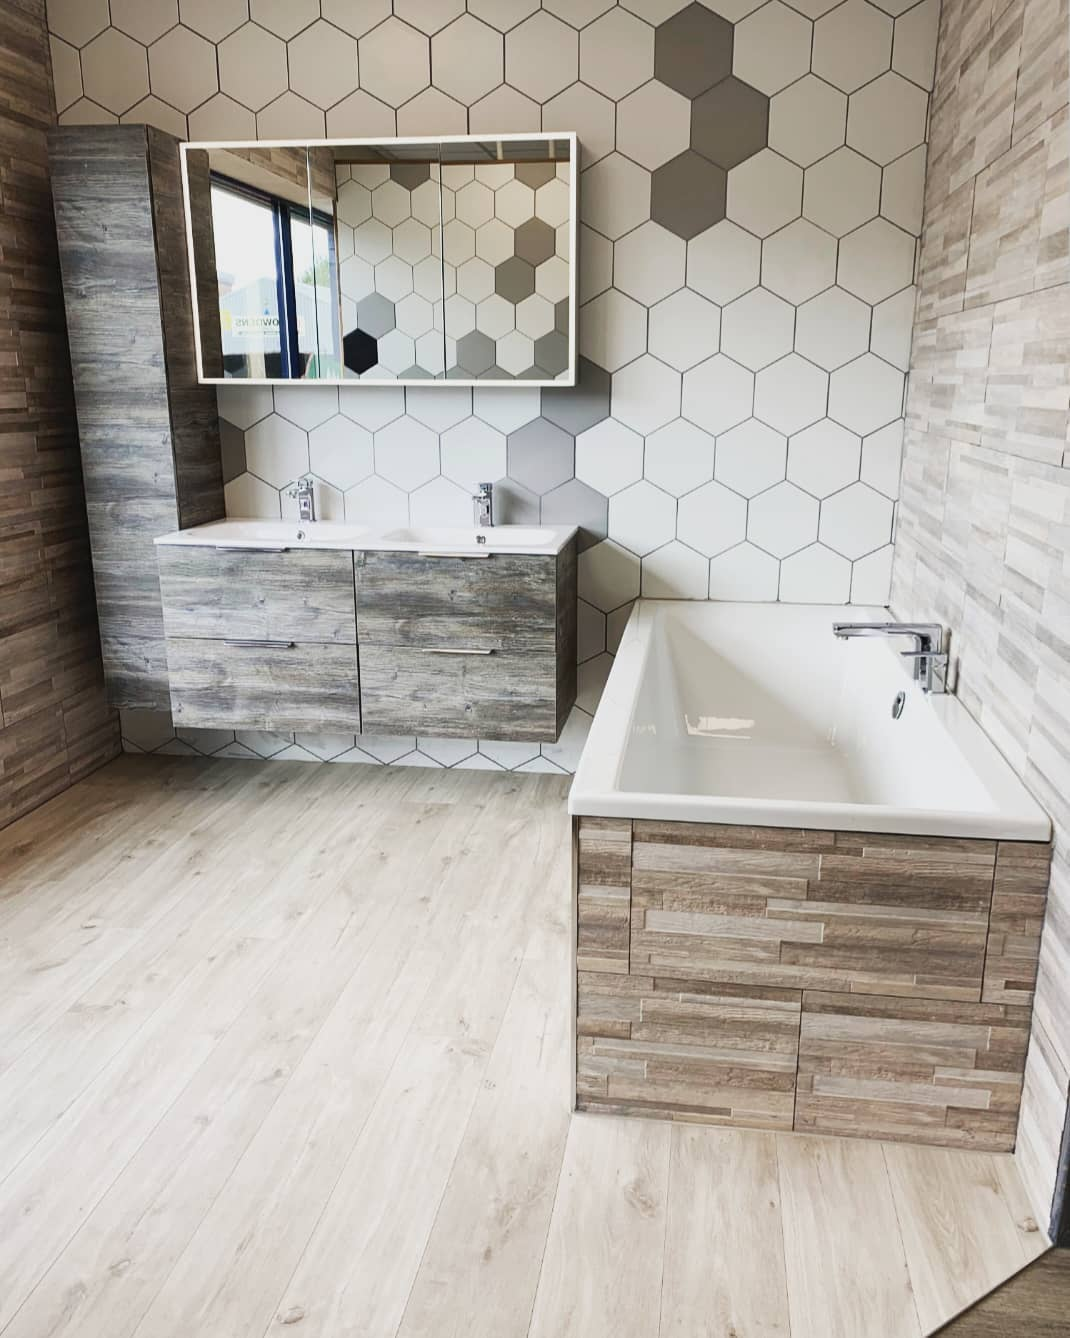 Geometric tiling on display at our Boston Bathrooms Showroom